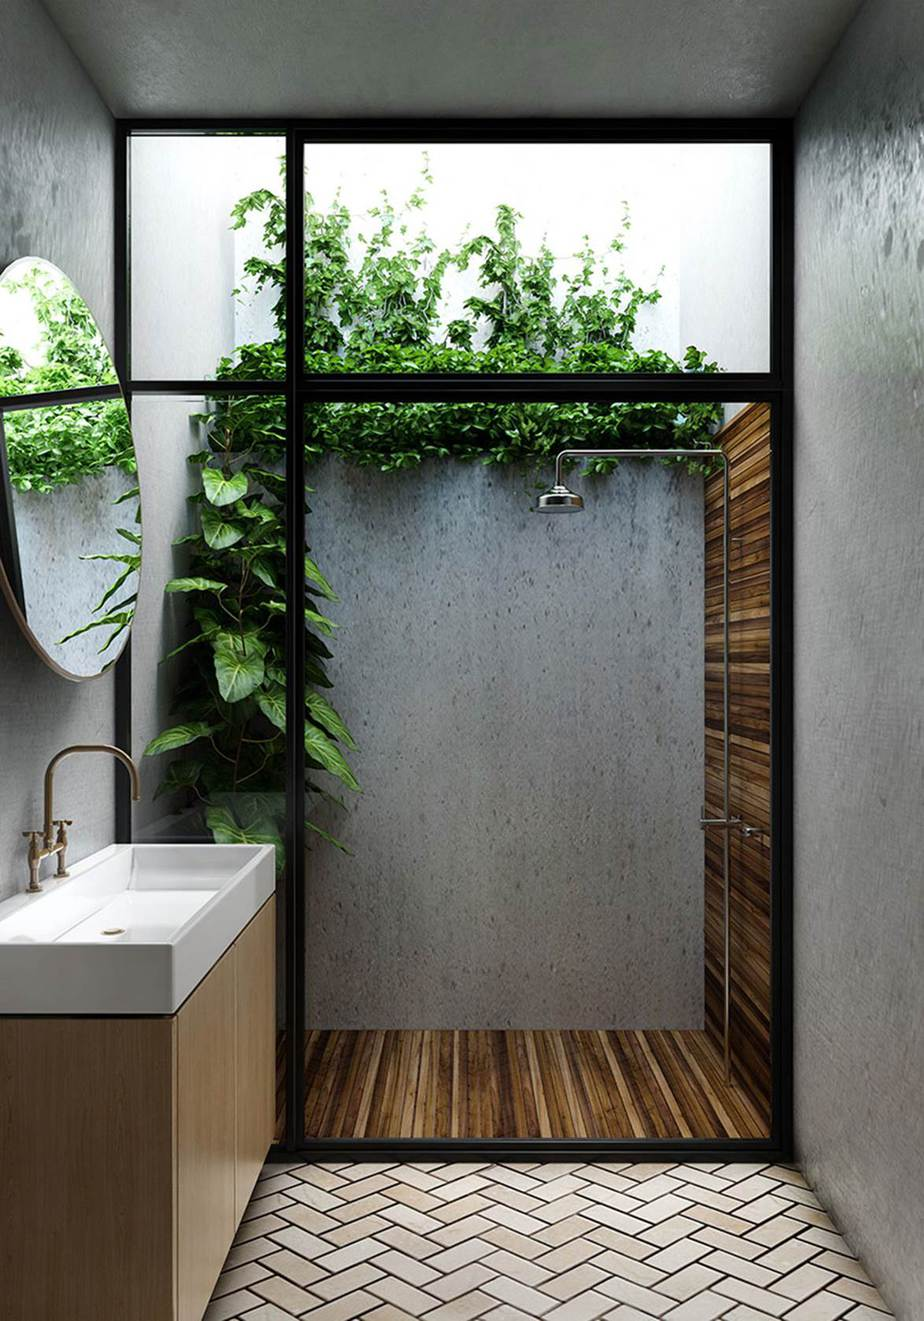 5.Natural Bathroom with plants By Simphome.com